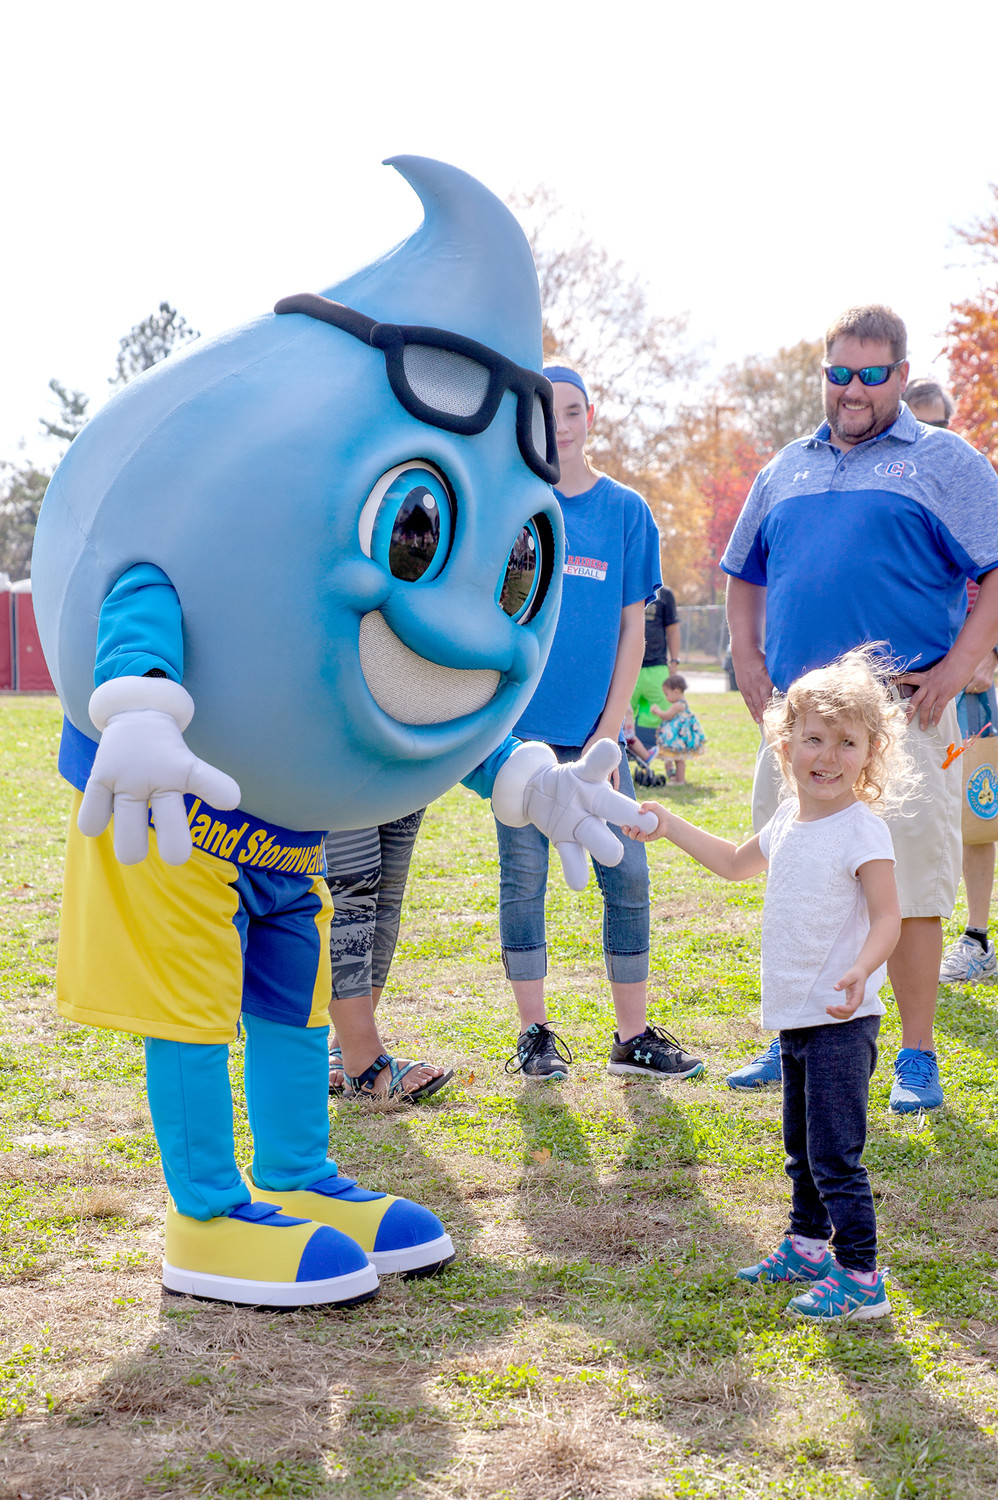 CLEVELAND STORMWATER MASCOT, Ben Rainin, left, make a new friend, Mary Maxwell, during Sunday's event.